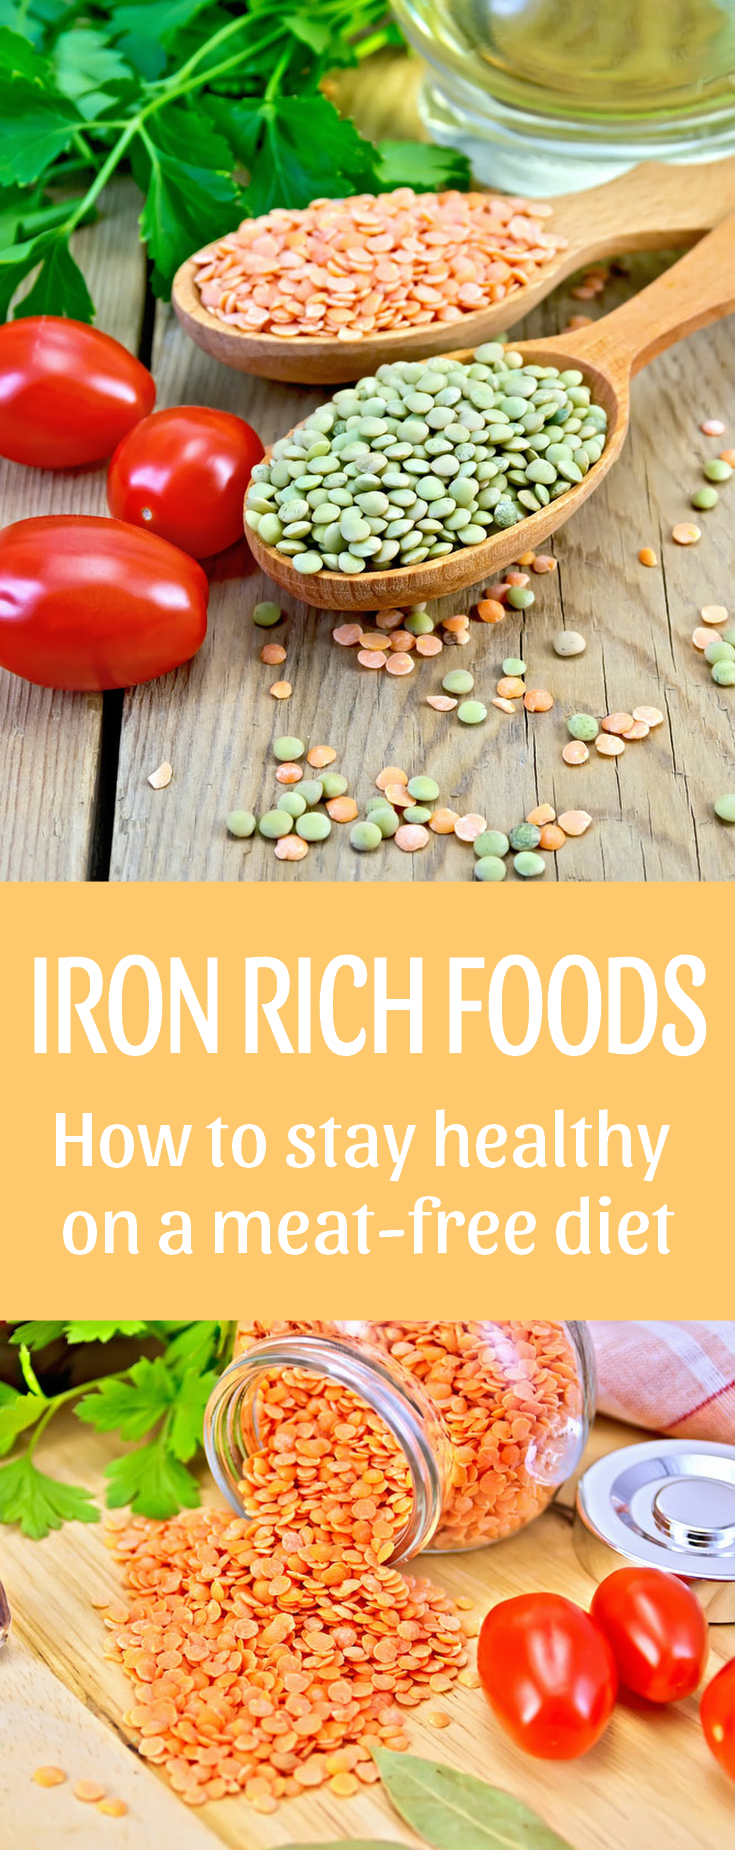 Iron rich foods (With images) Vitamins for vegetarians